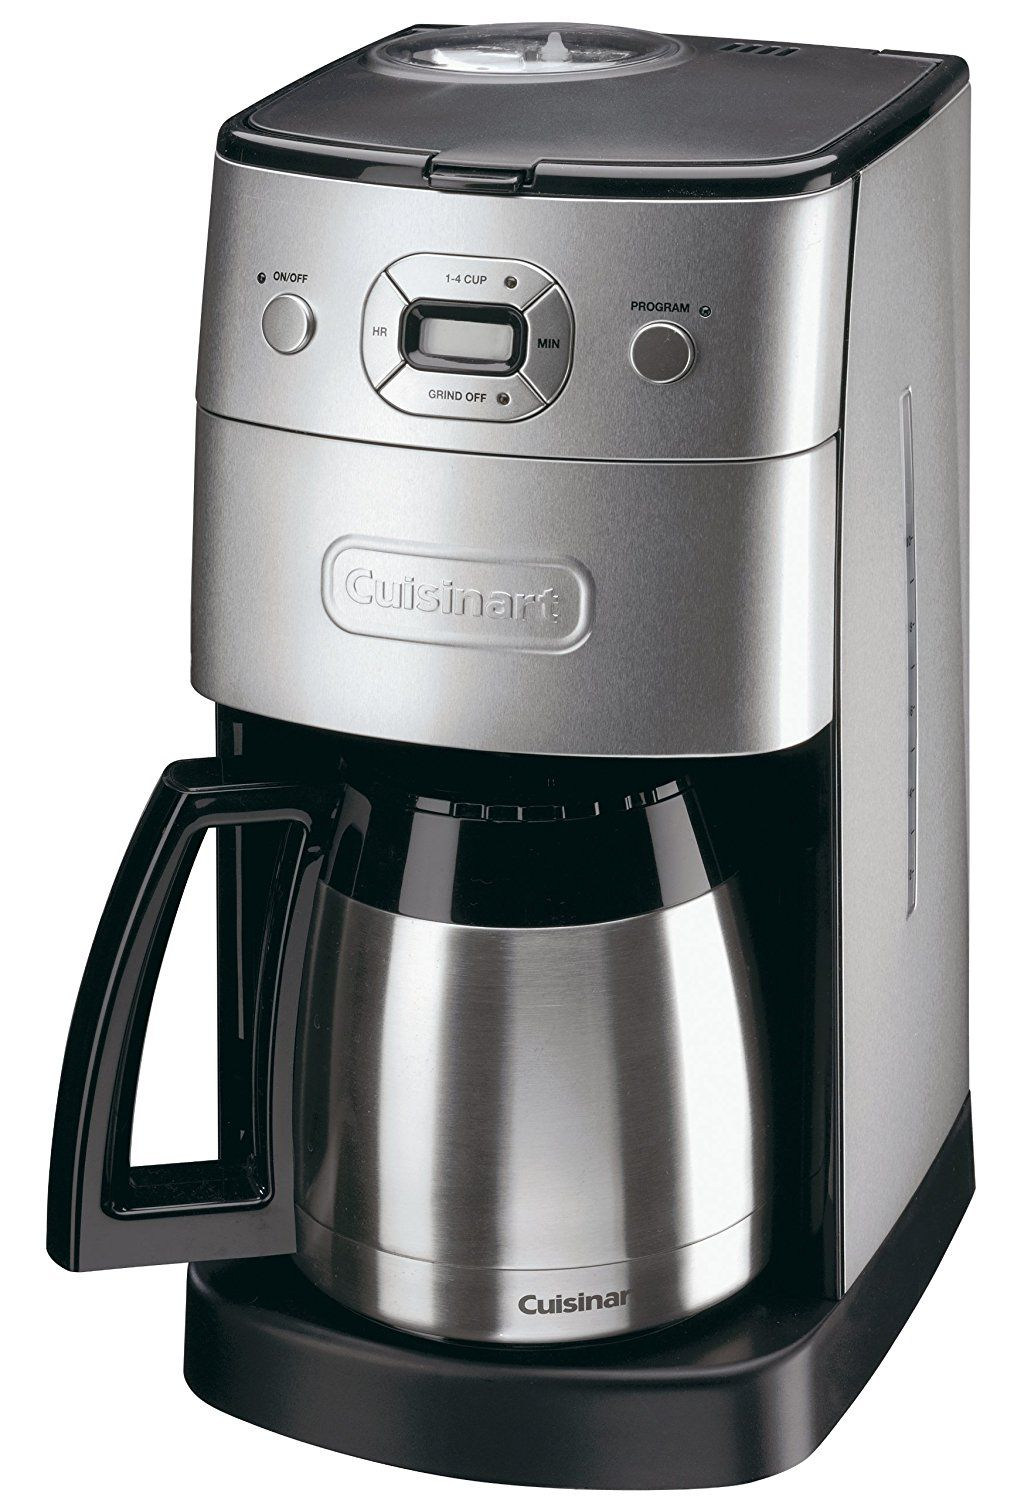 Cuisinart DGB650BCU Grind and Brew Automatic Filter Coffee